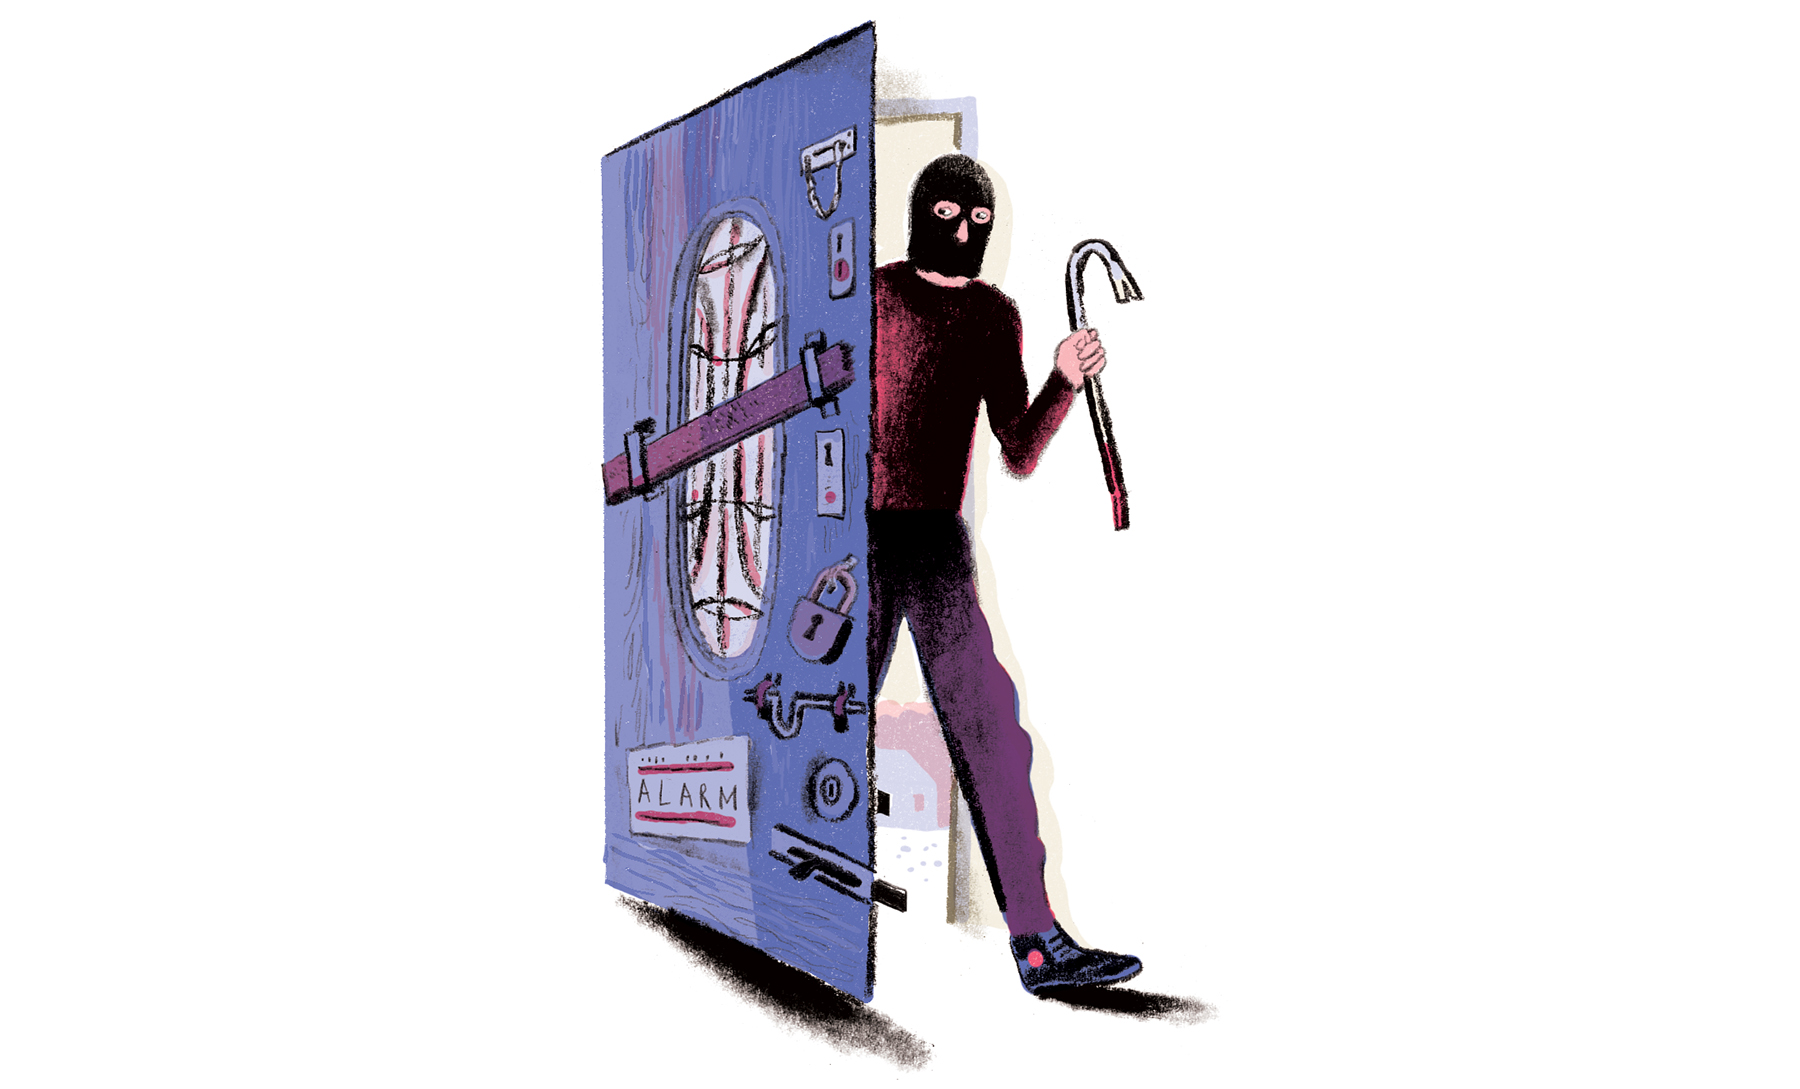 Illustration: Burglar breaking into very locked house